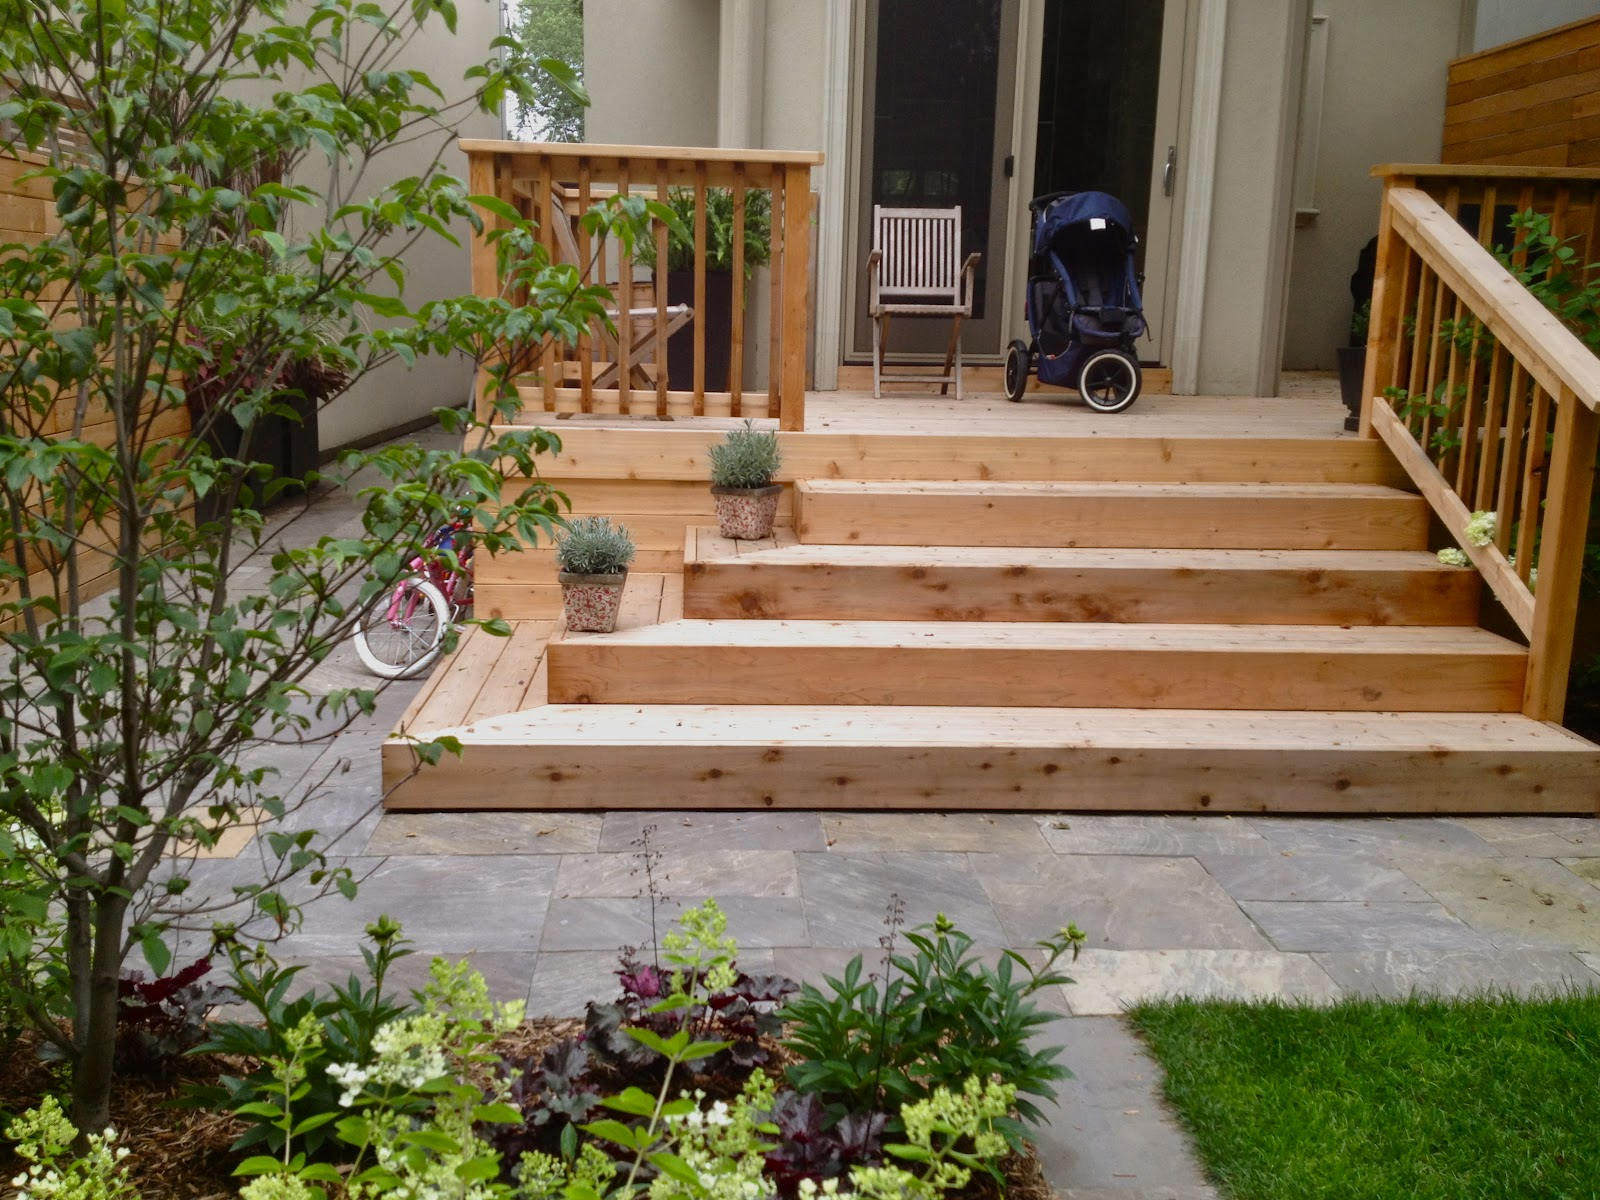 Exteriors For Living: Leaside Garden Room on Backyard Patio Steps id=15063